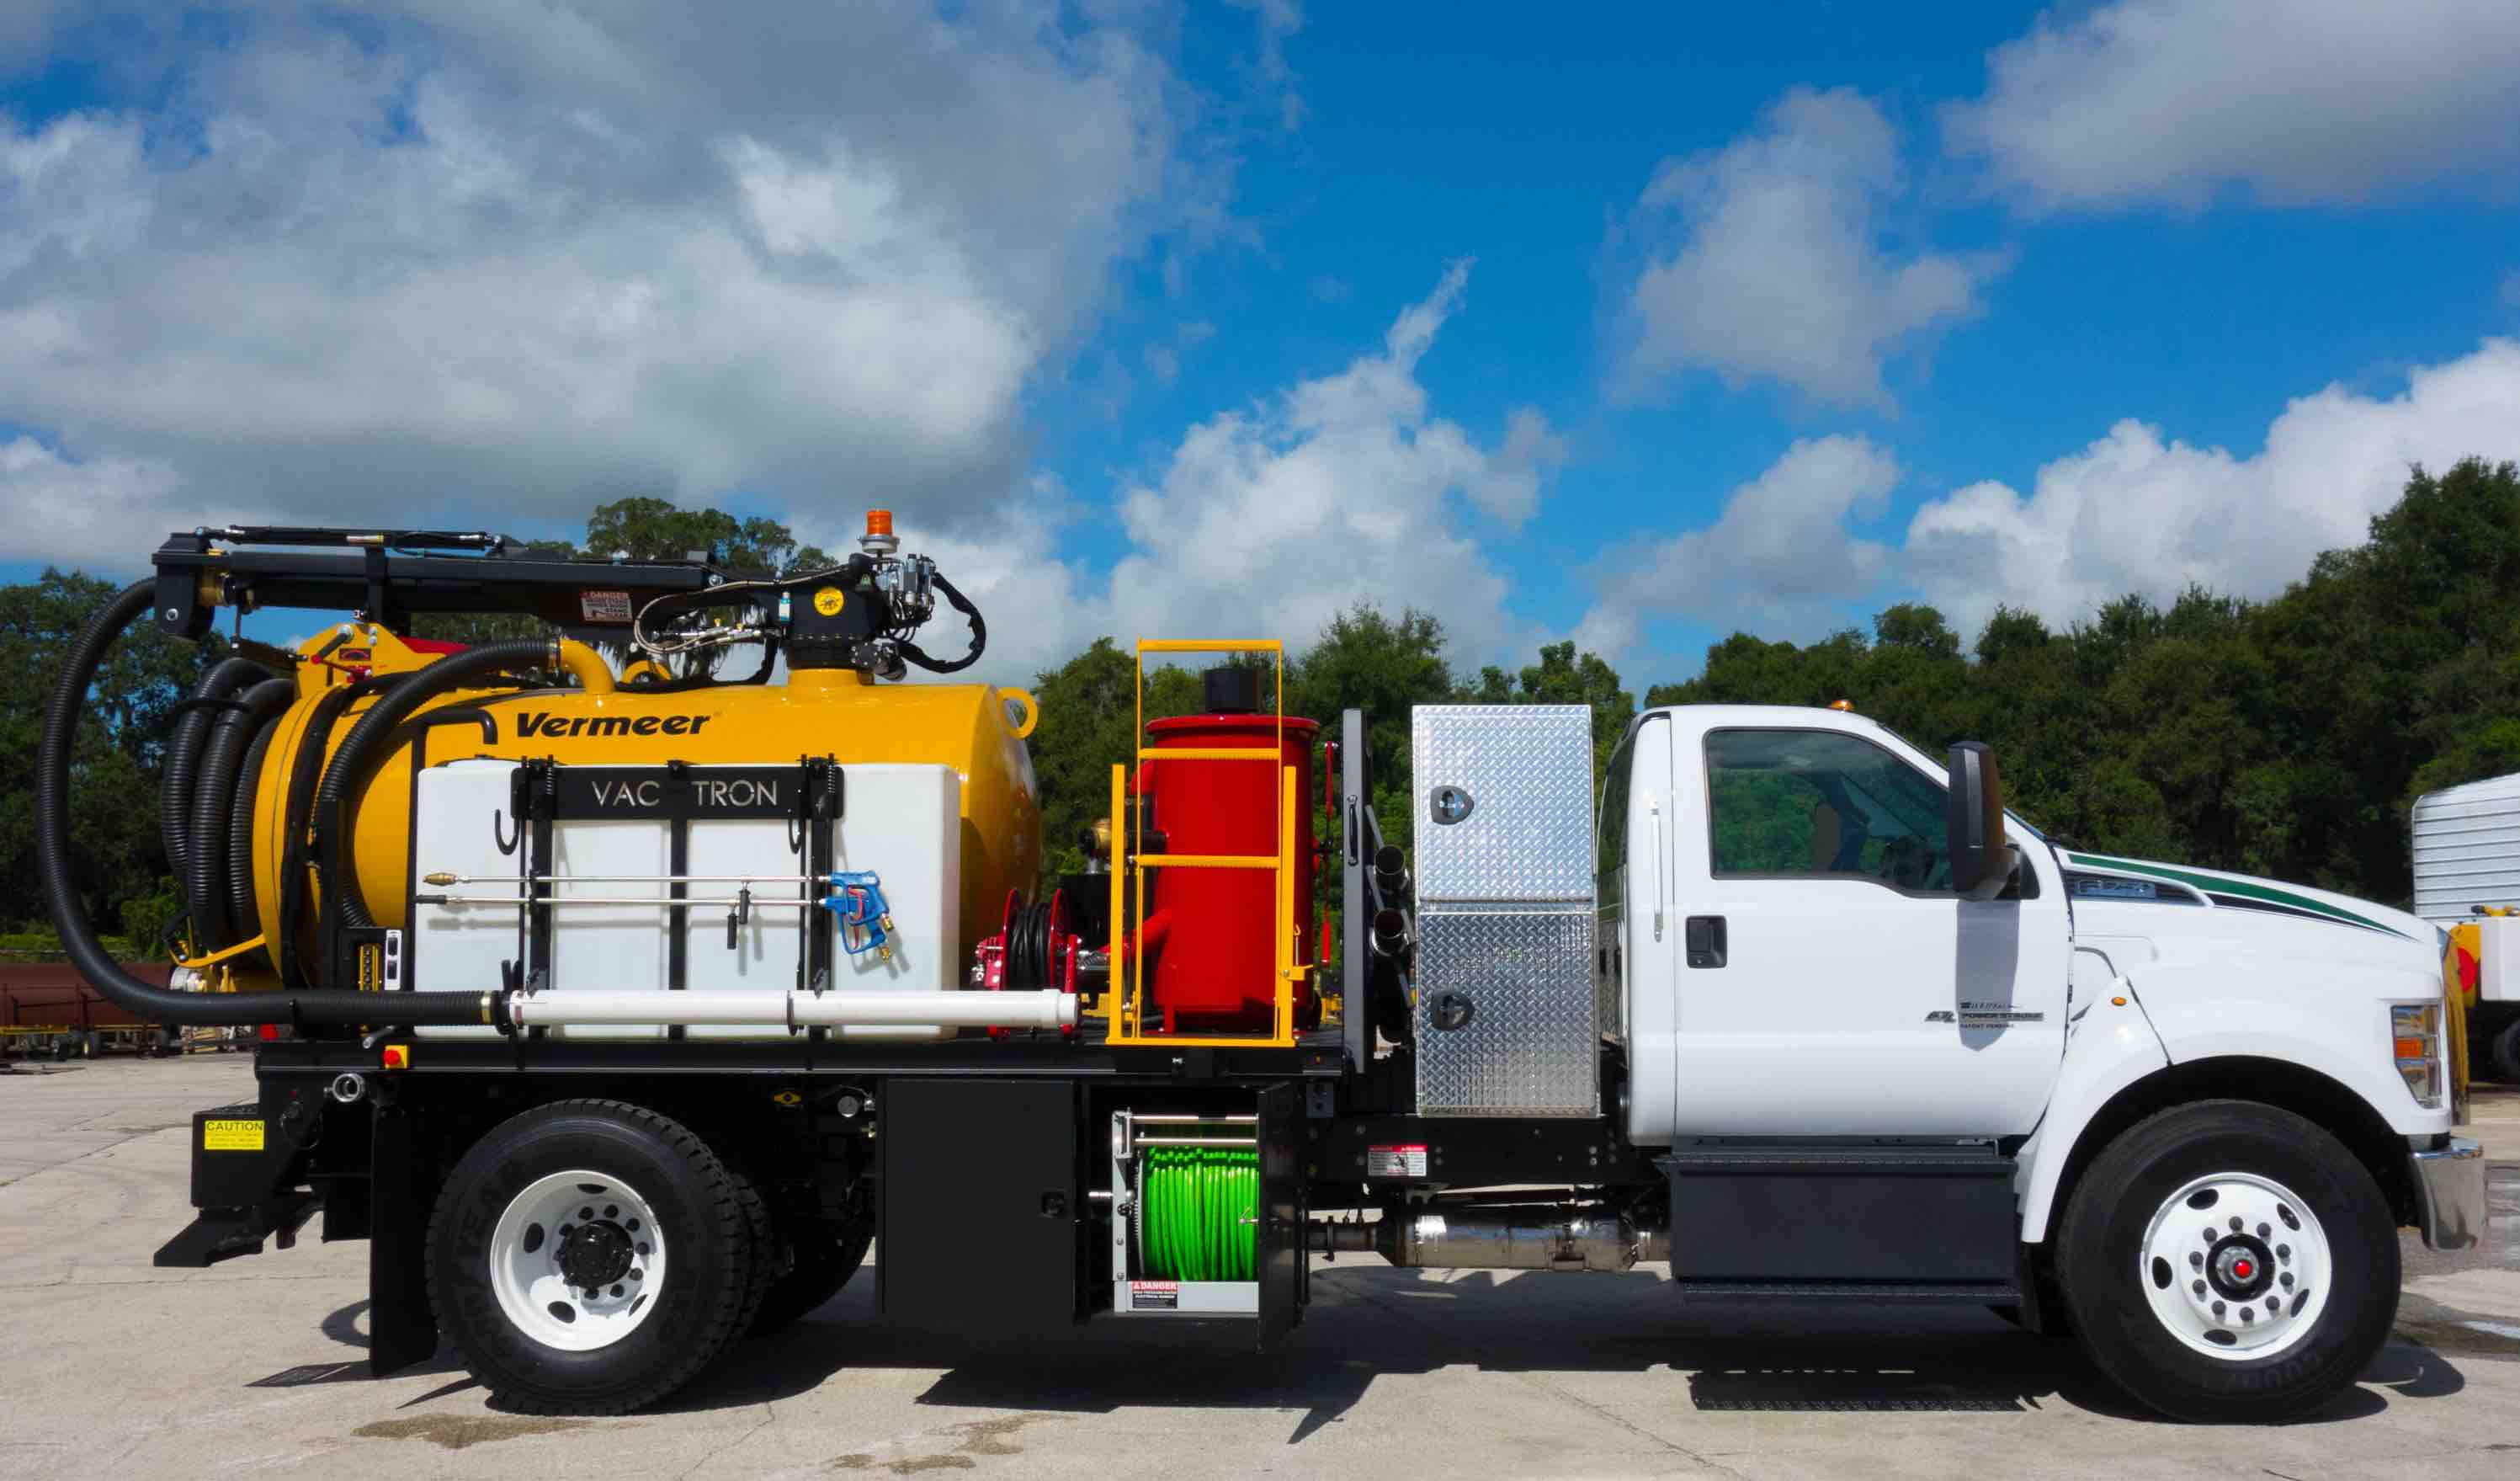 vac-trons-jetter-truck-vacuum-excavator-with-jetter-pump-package